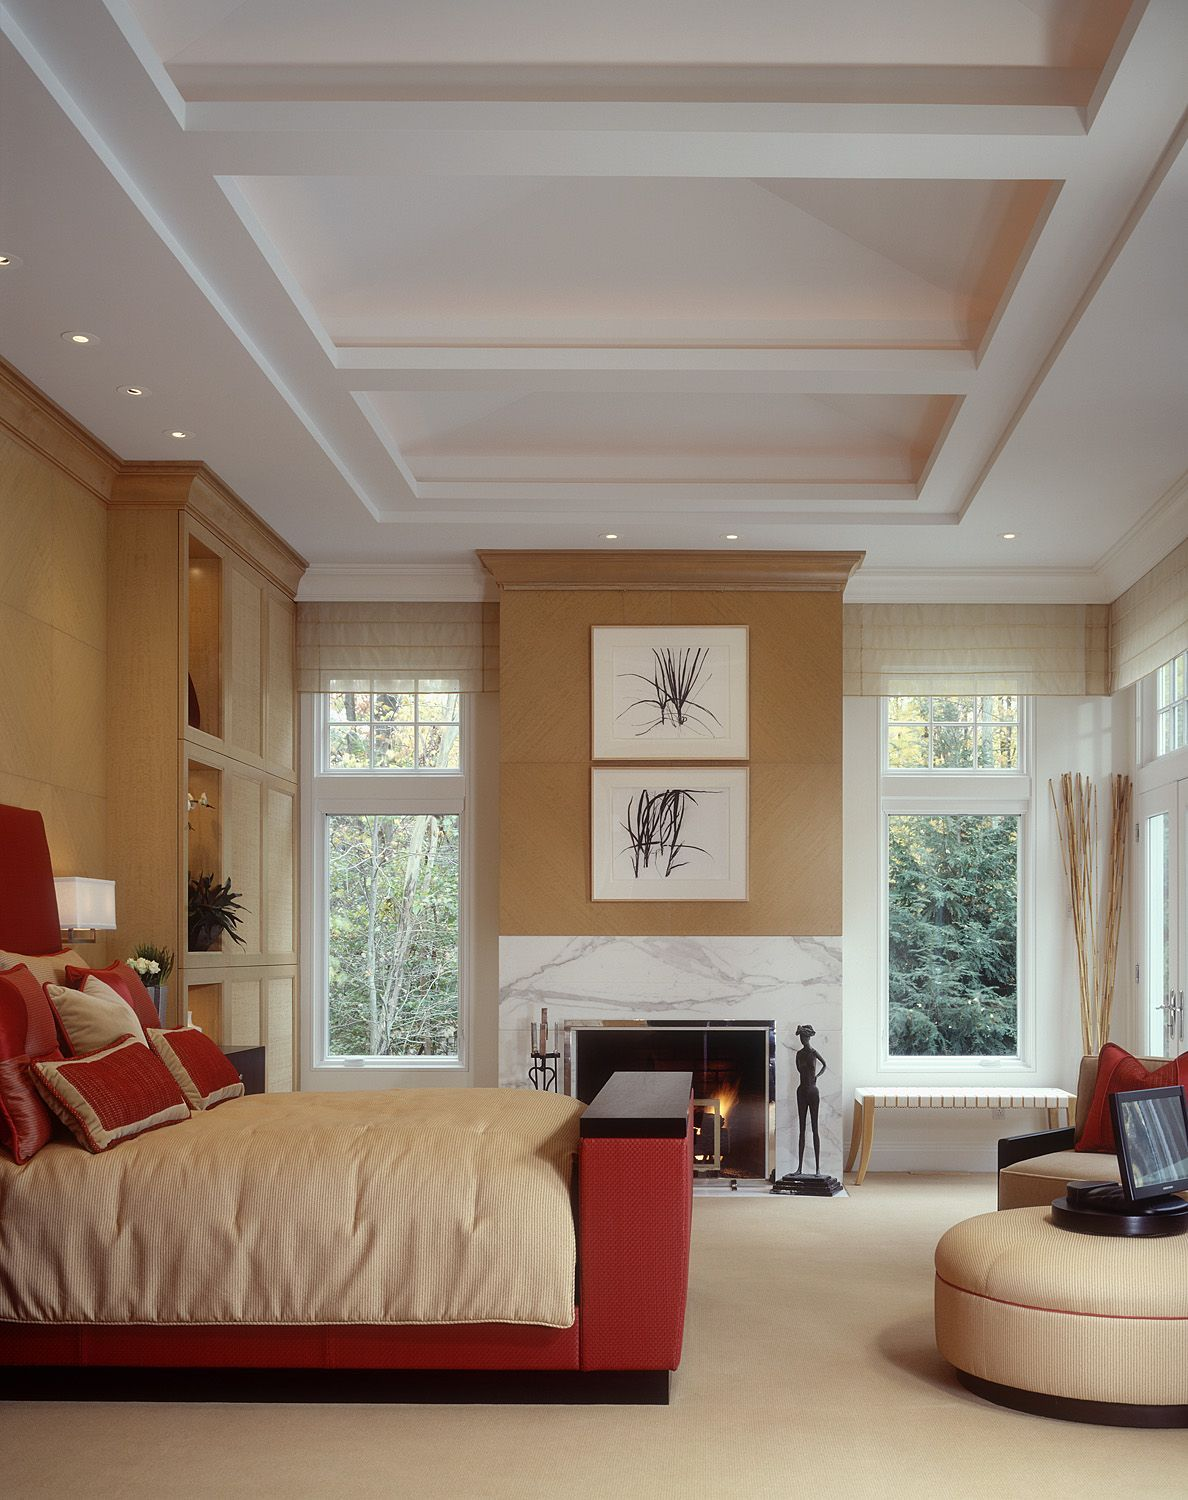 Bedroom Ceiling Height Wooden False Ceiling Double Height False Ceiling Bedroom